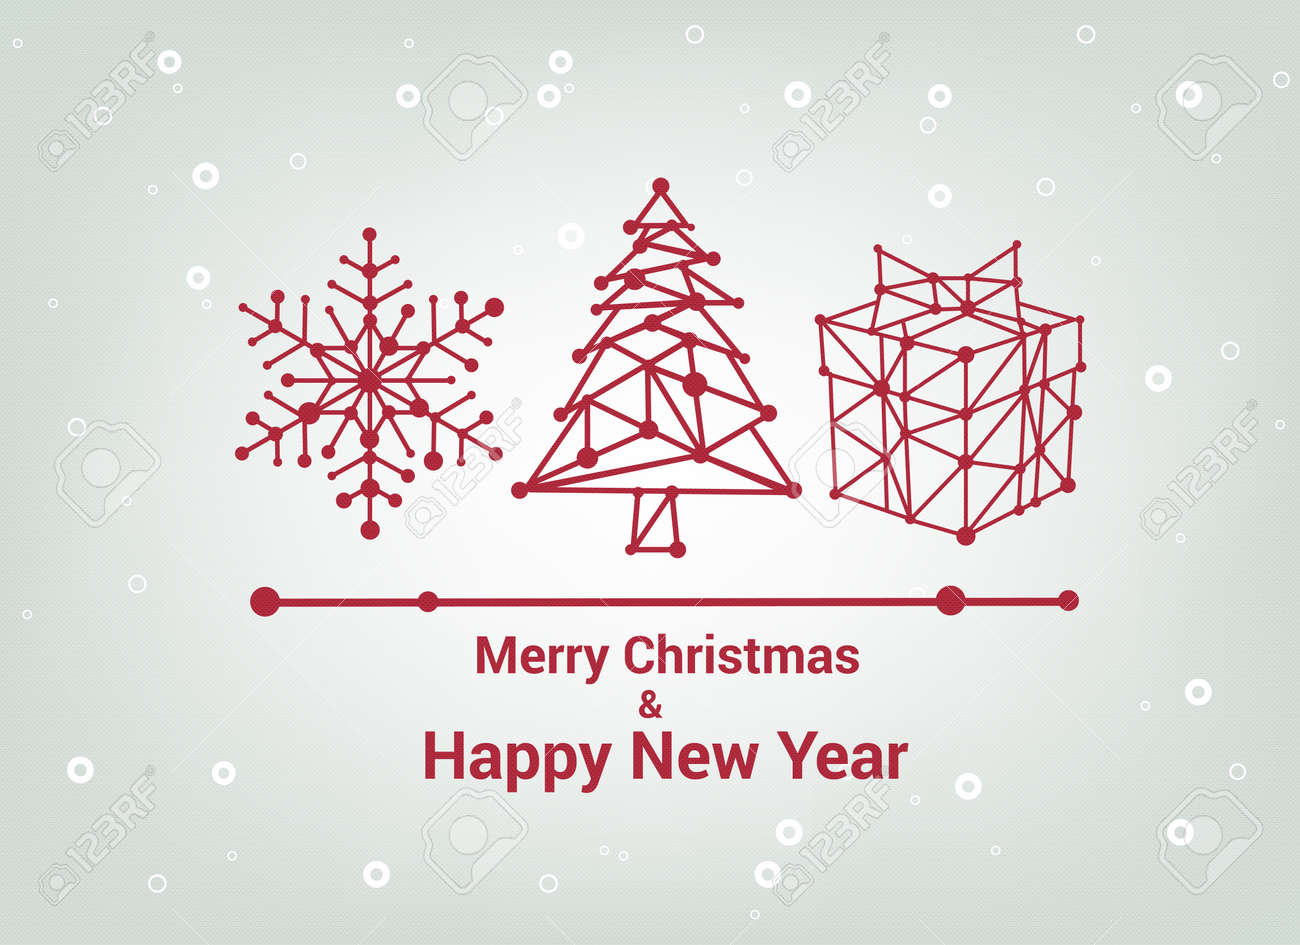 Christmas tree merry christmas and happy new year line christmas tree merry christmas and happy new year line minimalist style greeting card negle Image collections